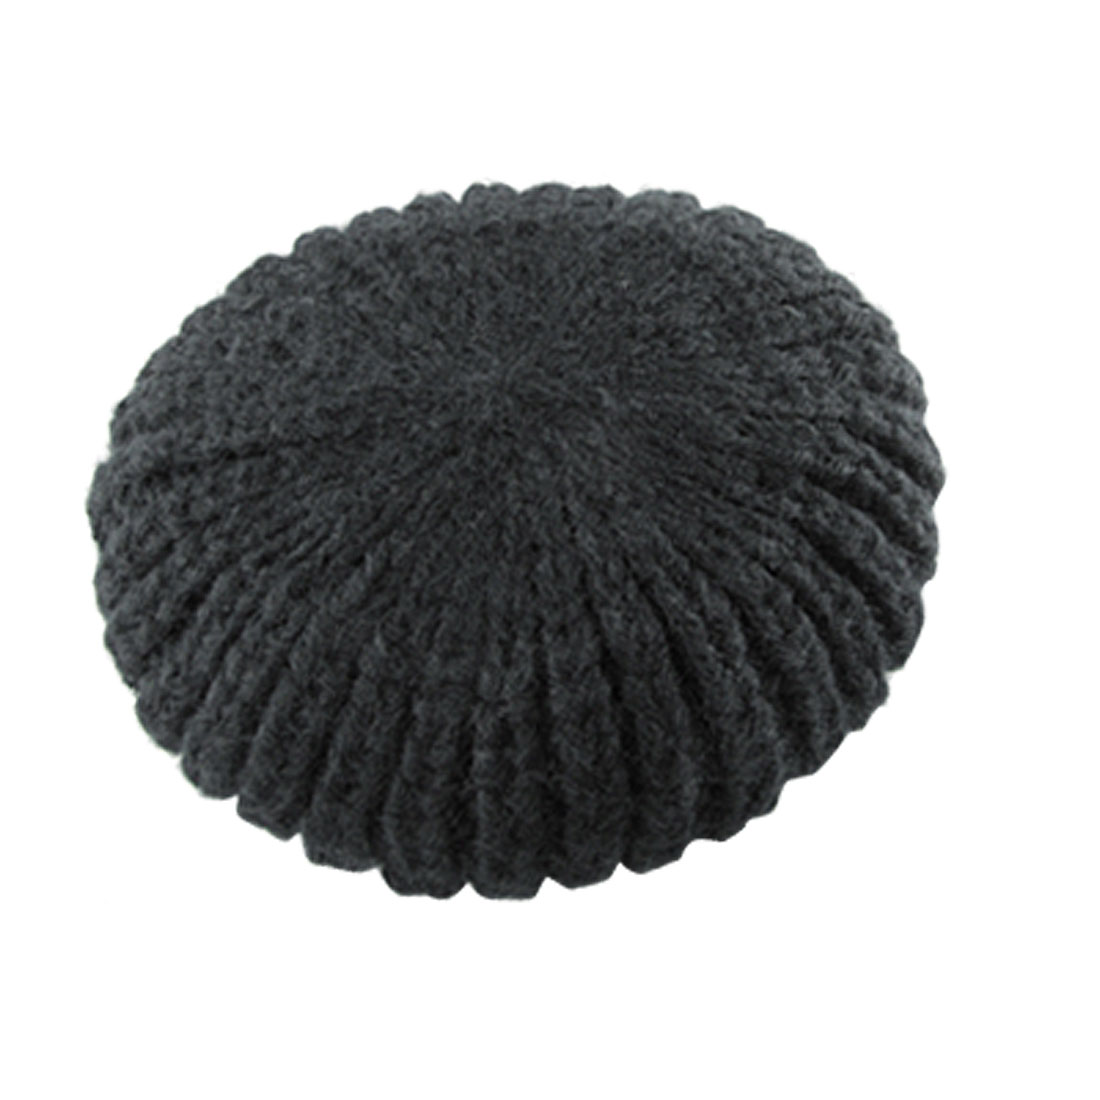 Ladies Warm Crochet Beanie Hat Knitting Black Cap